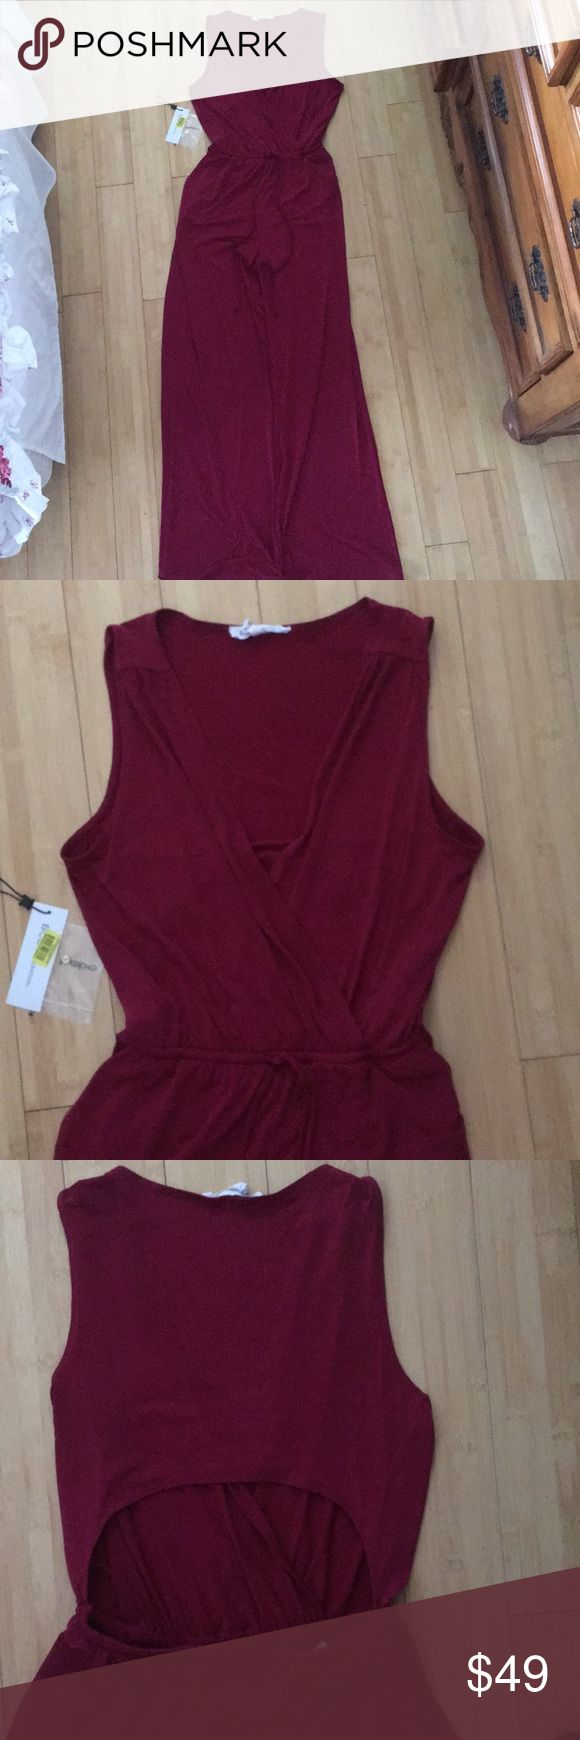 Bcbg long romper jumpsuit Gorgeous long romper, burgundy with detail cut out back excellent cond, tags included. BCBG Other